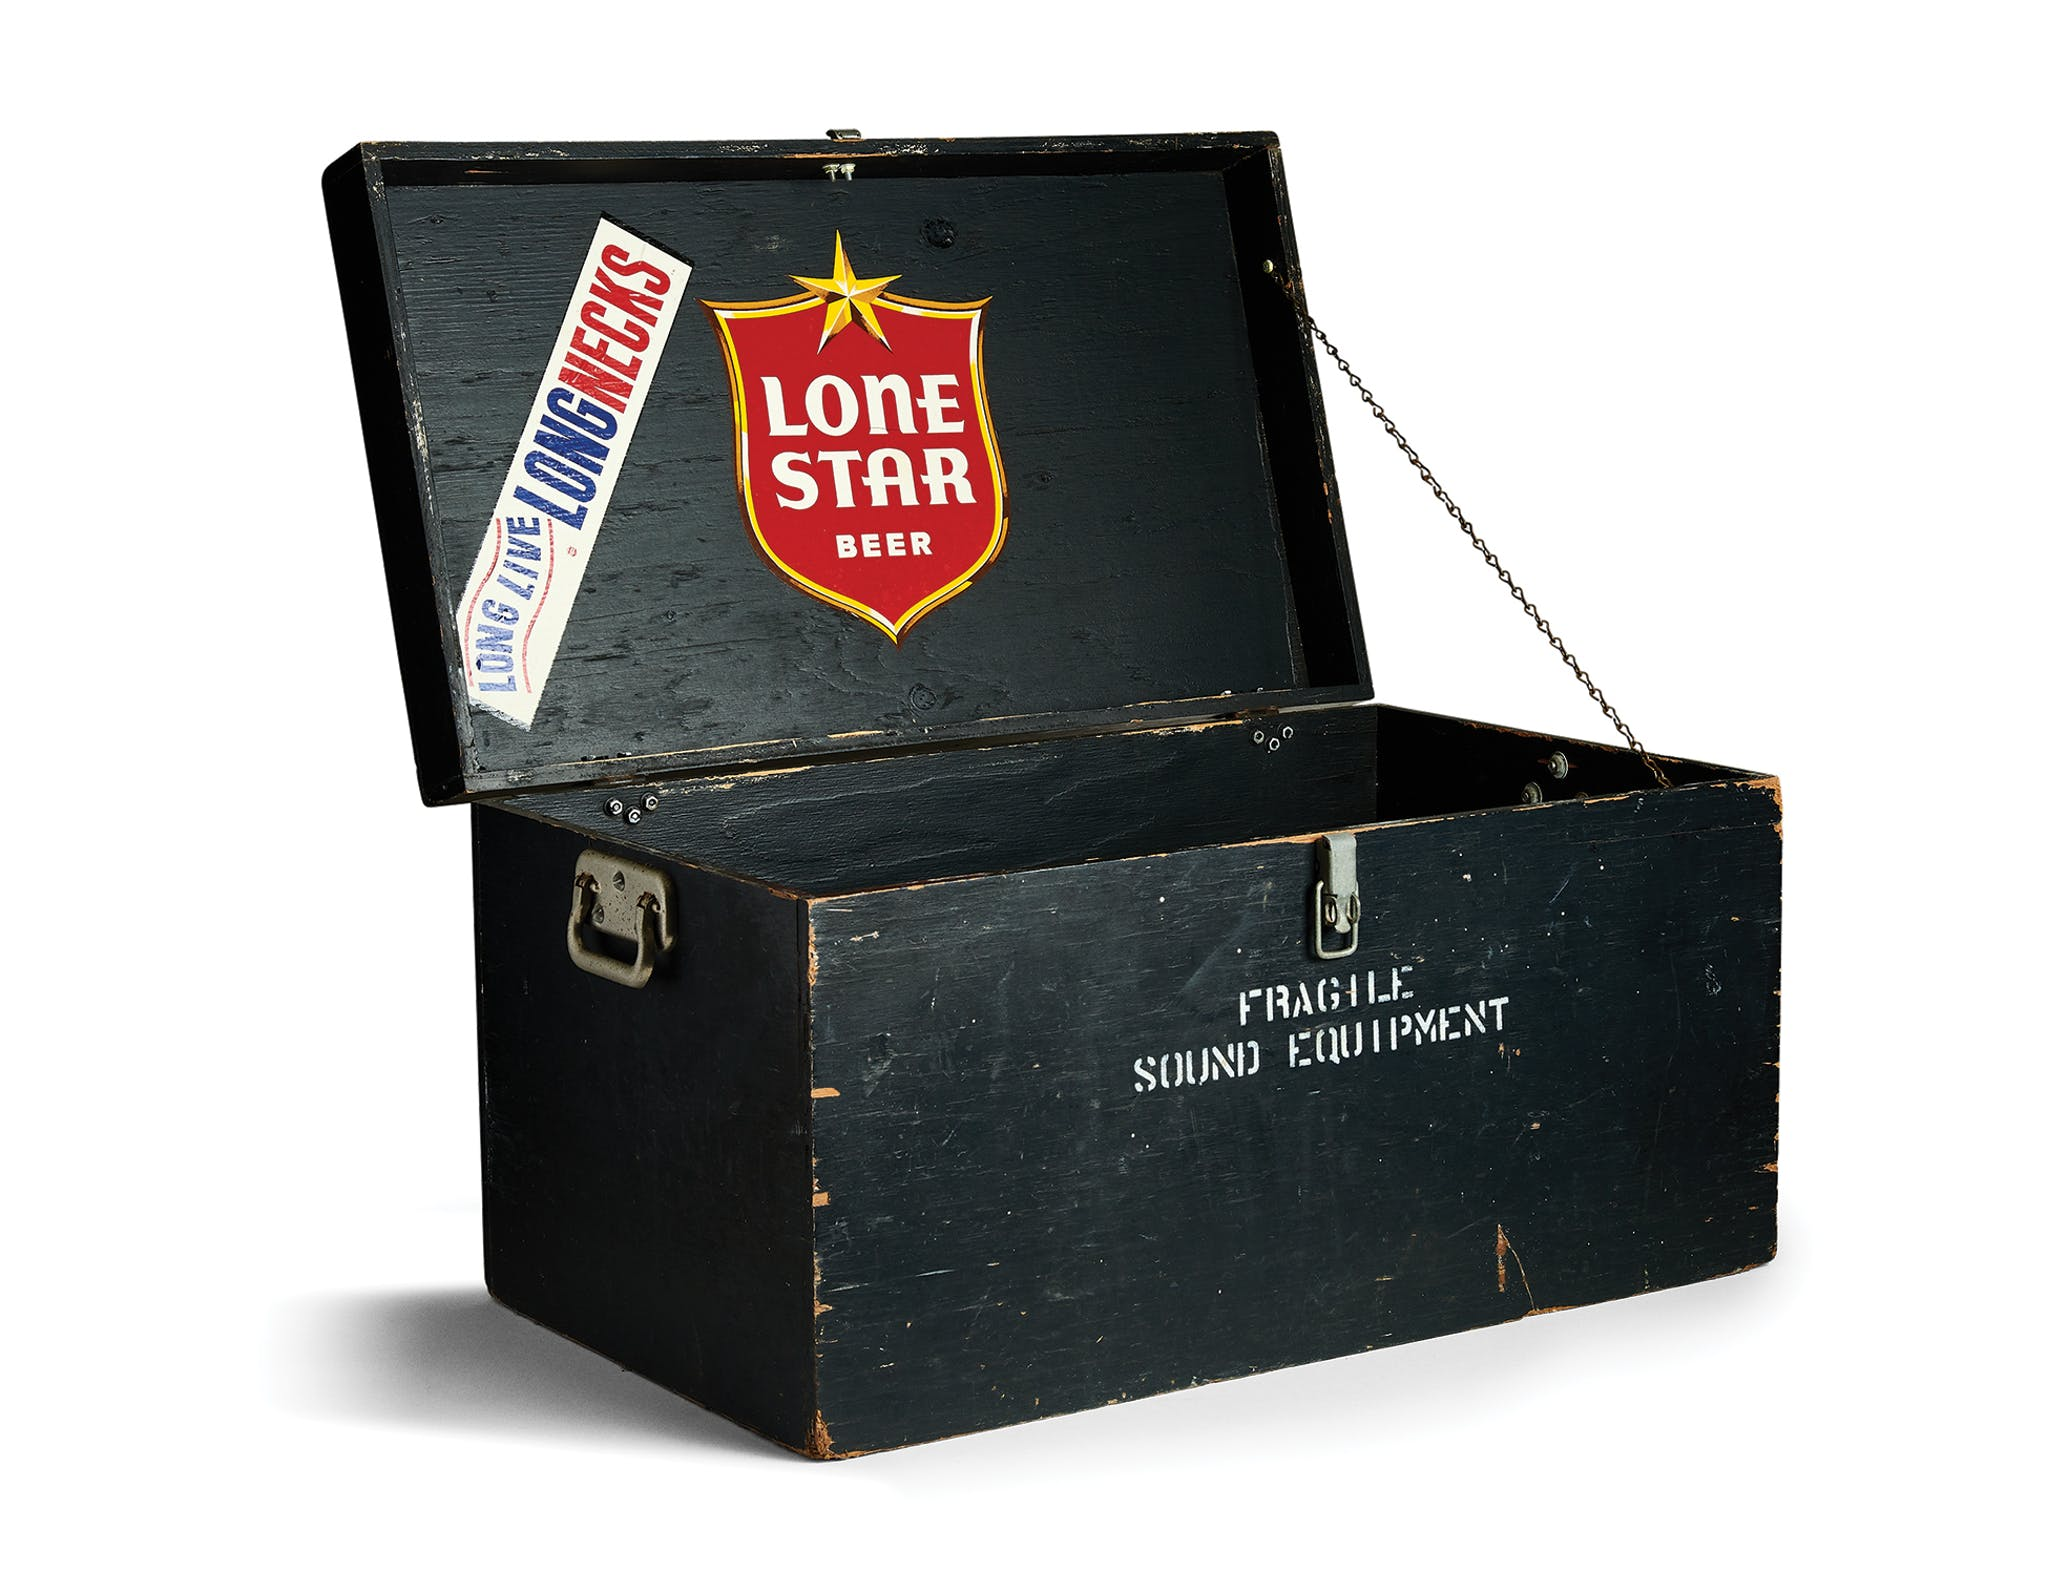 A fake sound equipment box used to sneak Lone Star backstage to Willie.